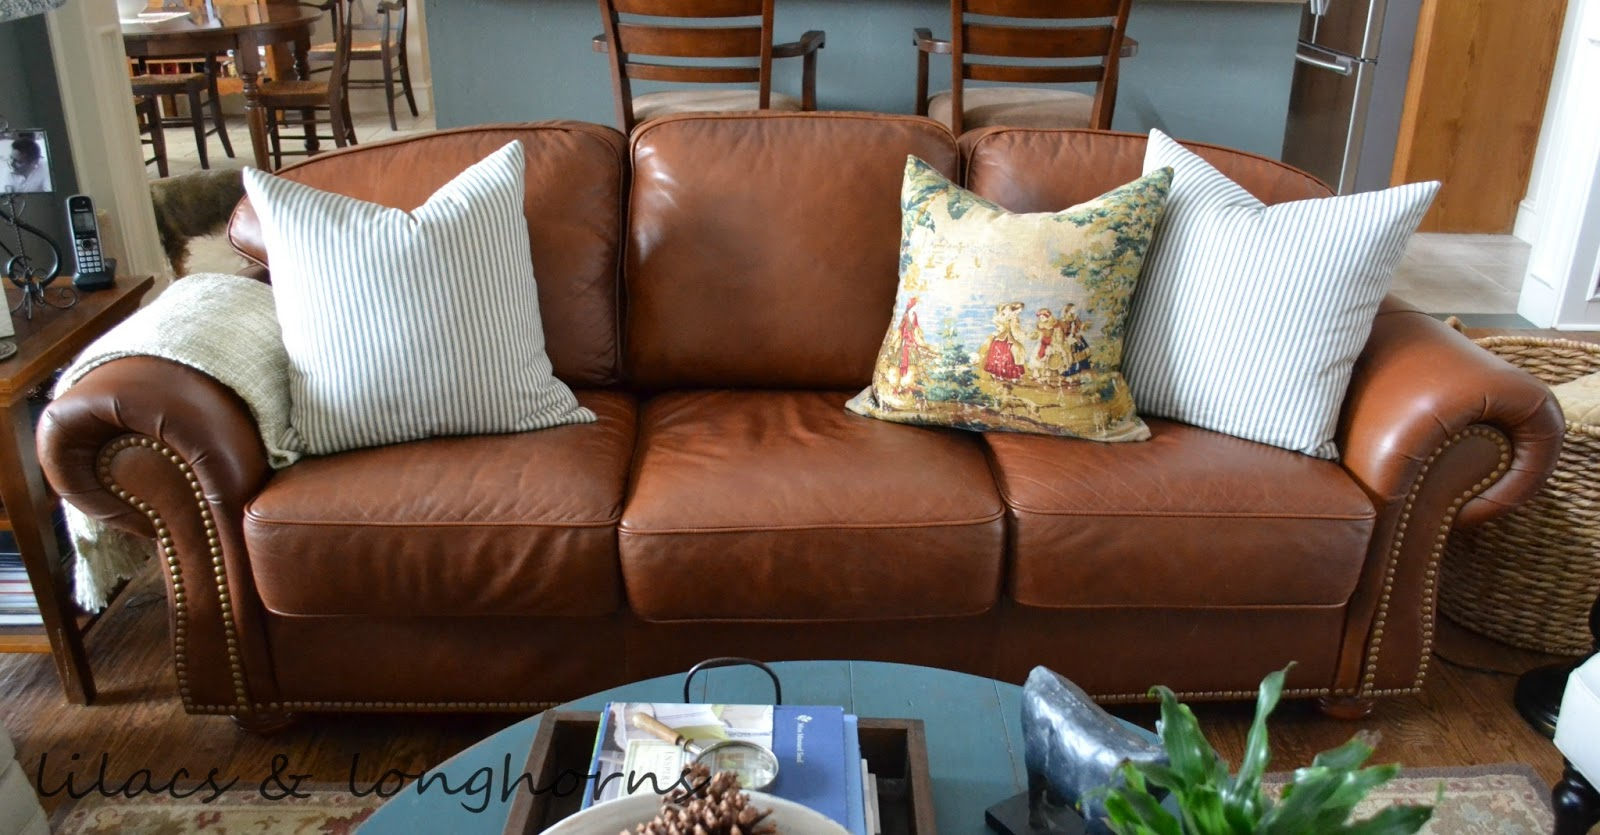 Superbe Repairing And Refurbishing Leather Furniture